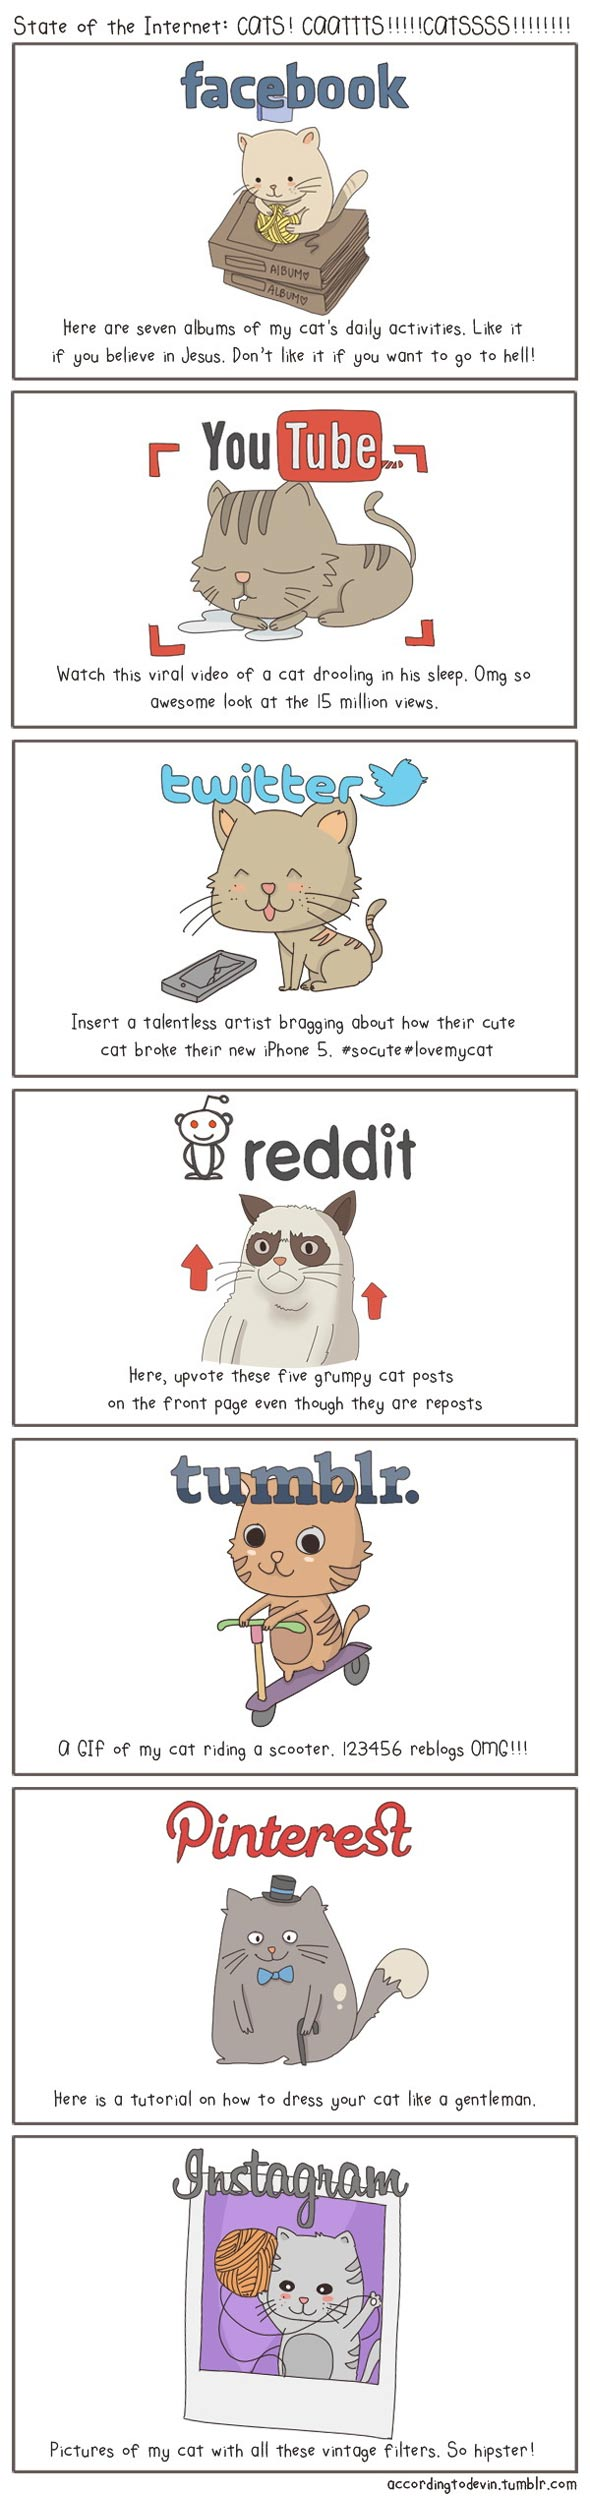 The State Of The Internet, Explained With Cats » Geeky Fun